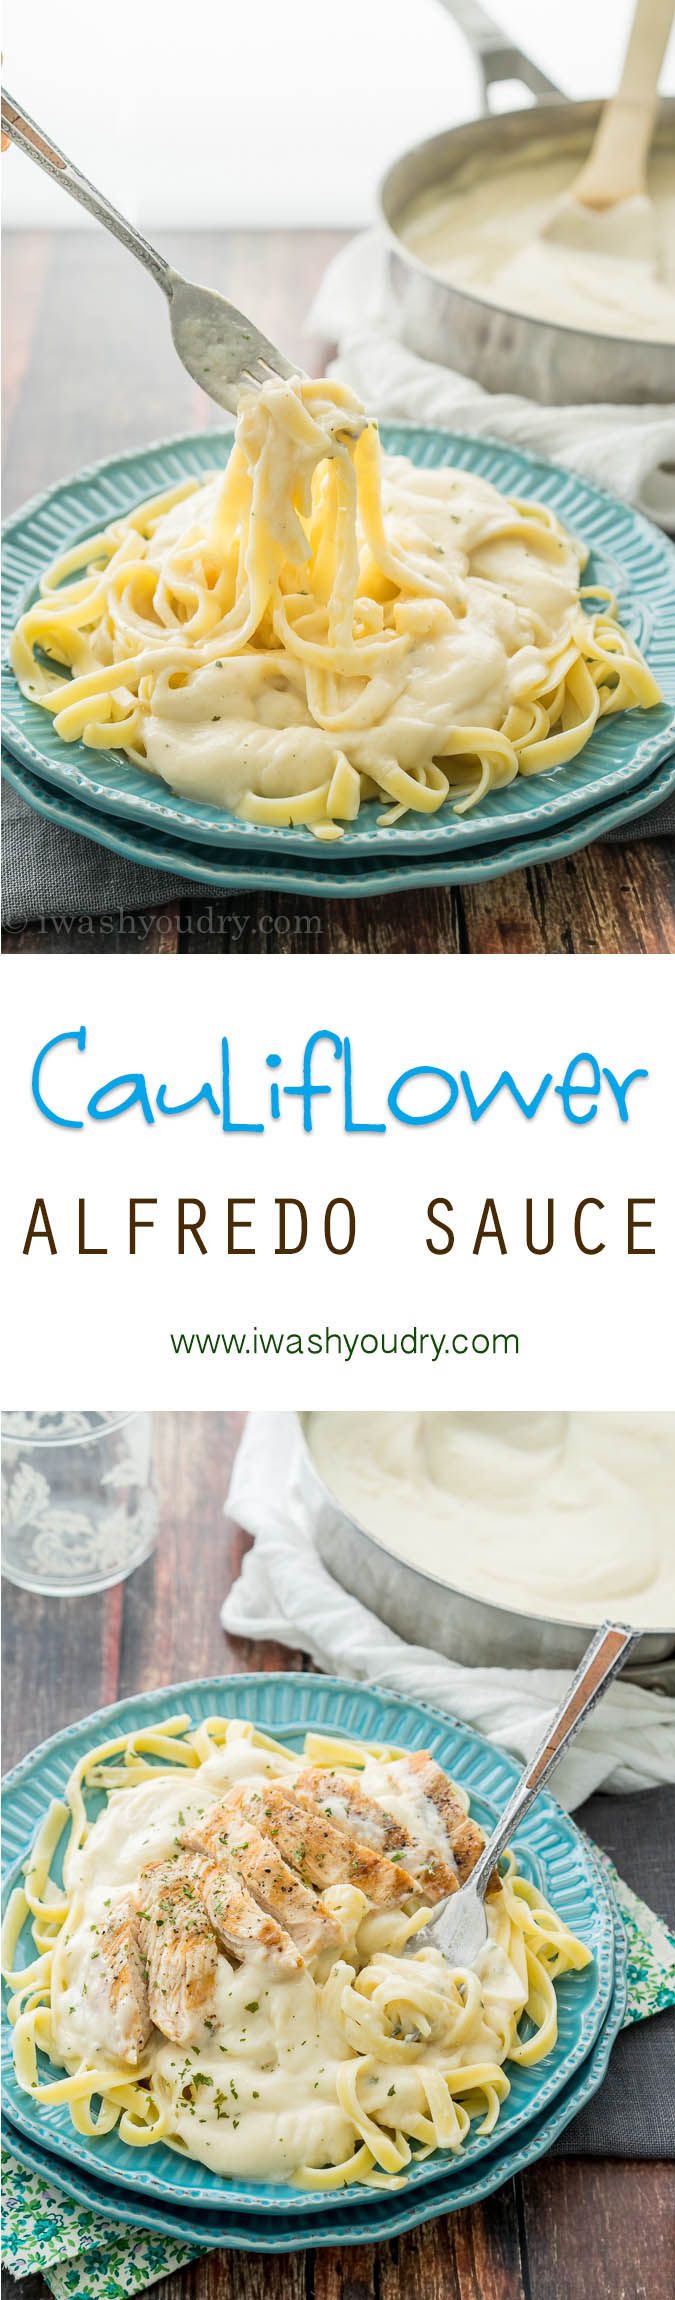 Quick and Easy Creamy Cauliflower